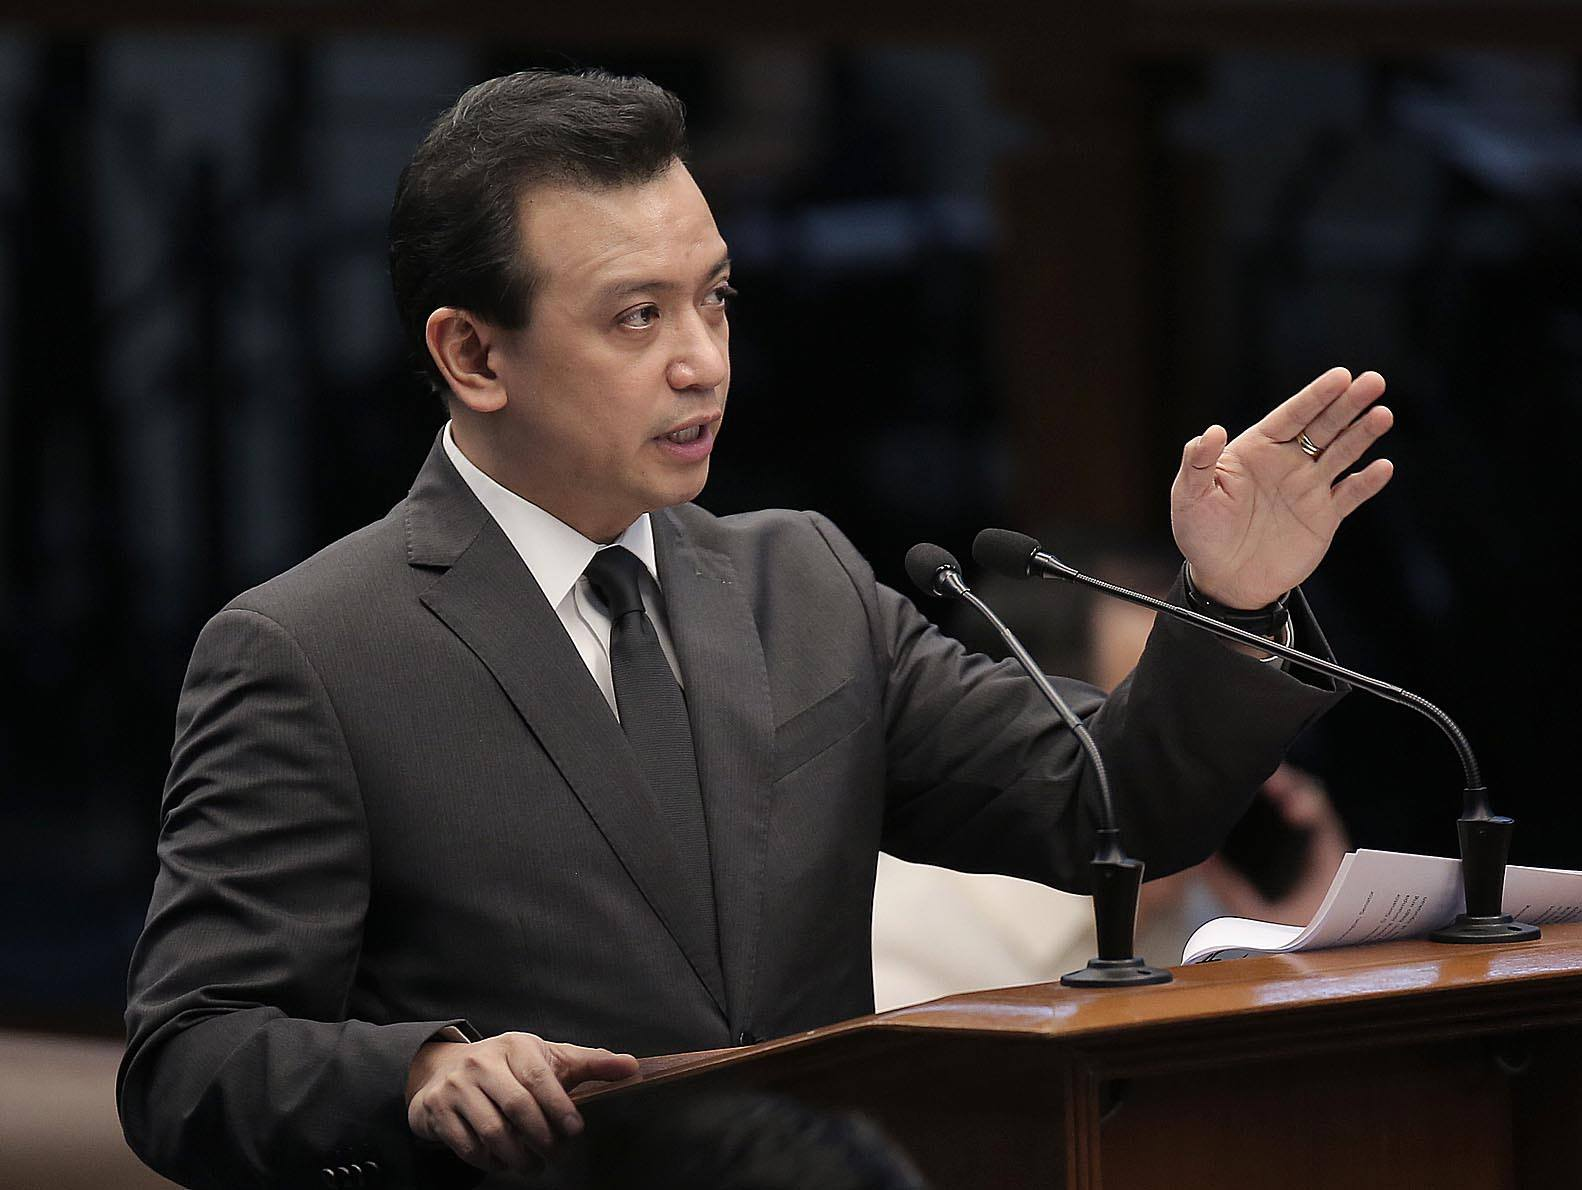 FILE: Senator Antonio Trillanes IV said he would immediately issue a bank secrecy waiver for all the foreign bank accounts that he allegedly owned to prove President Rodrigo Duterte's allegation wrong.  (Photos by Alex Nuevaespaña via Senate of the Philippines/Facebook)